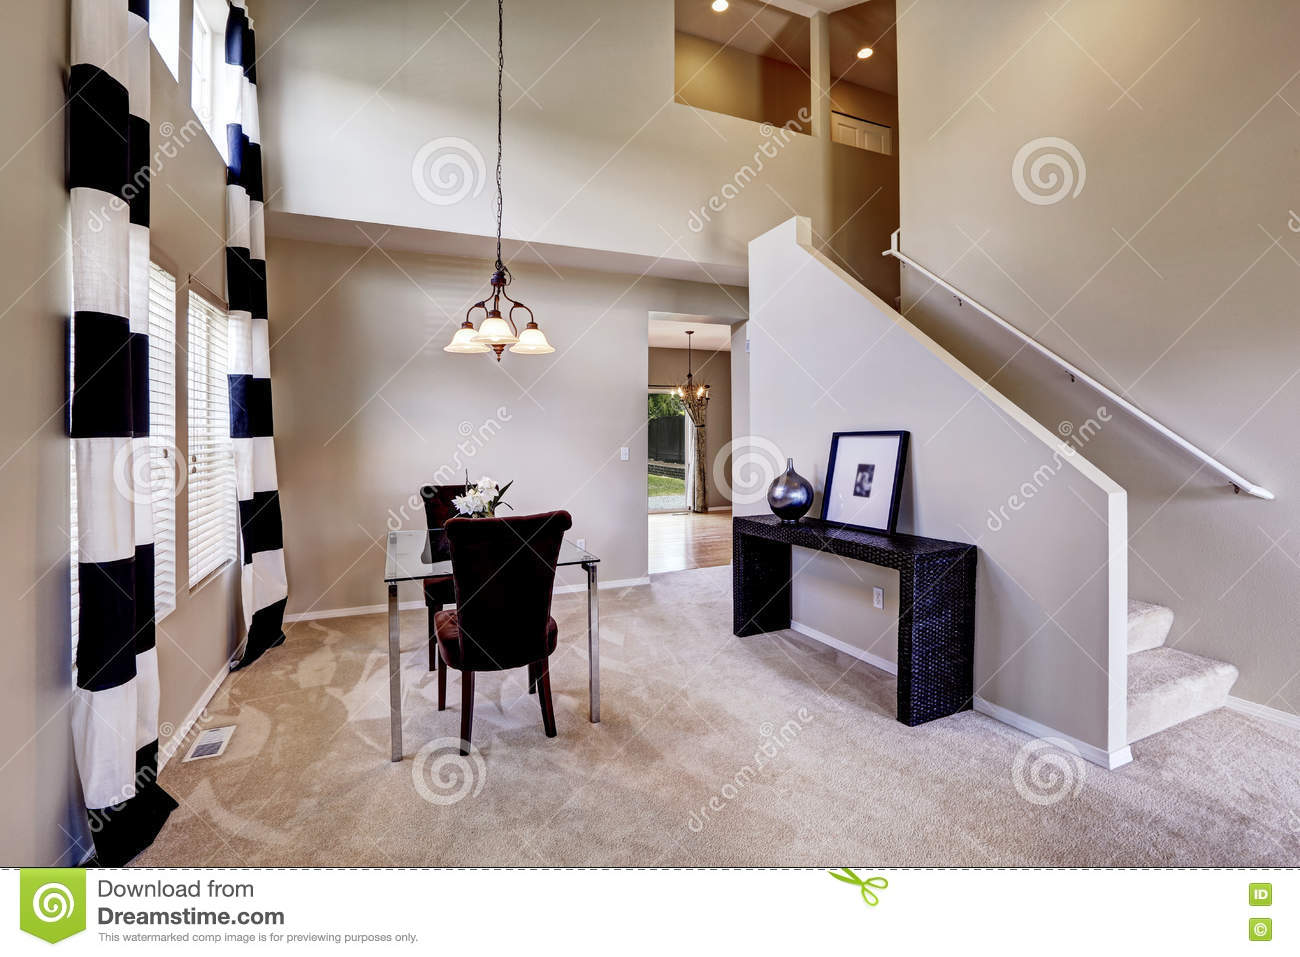 Dining Room Carpet Open Floor Plan Dining Room With Carpet Floor Stock Image Image